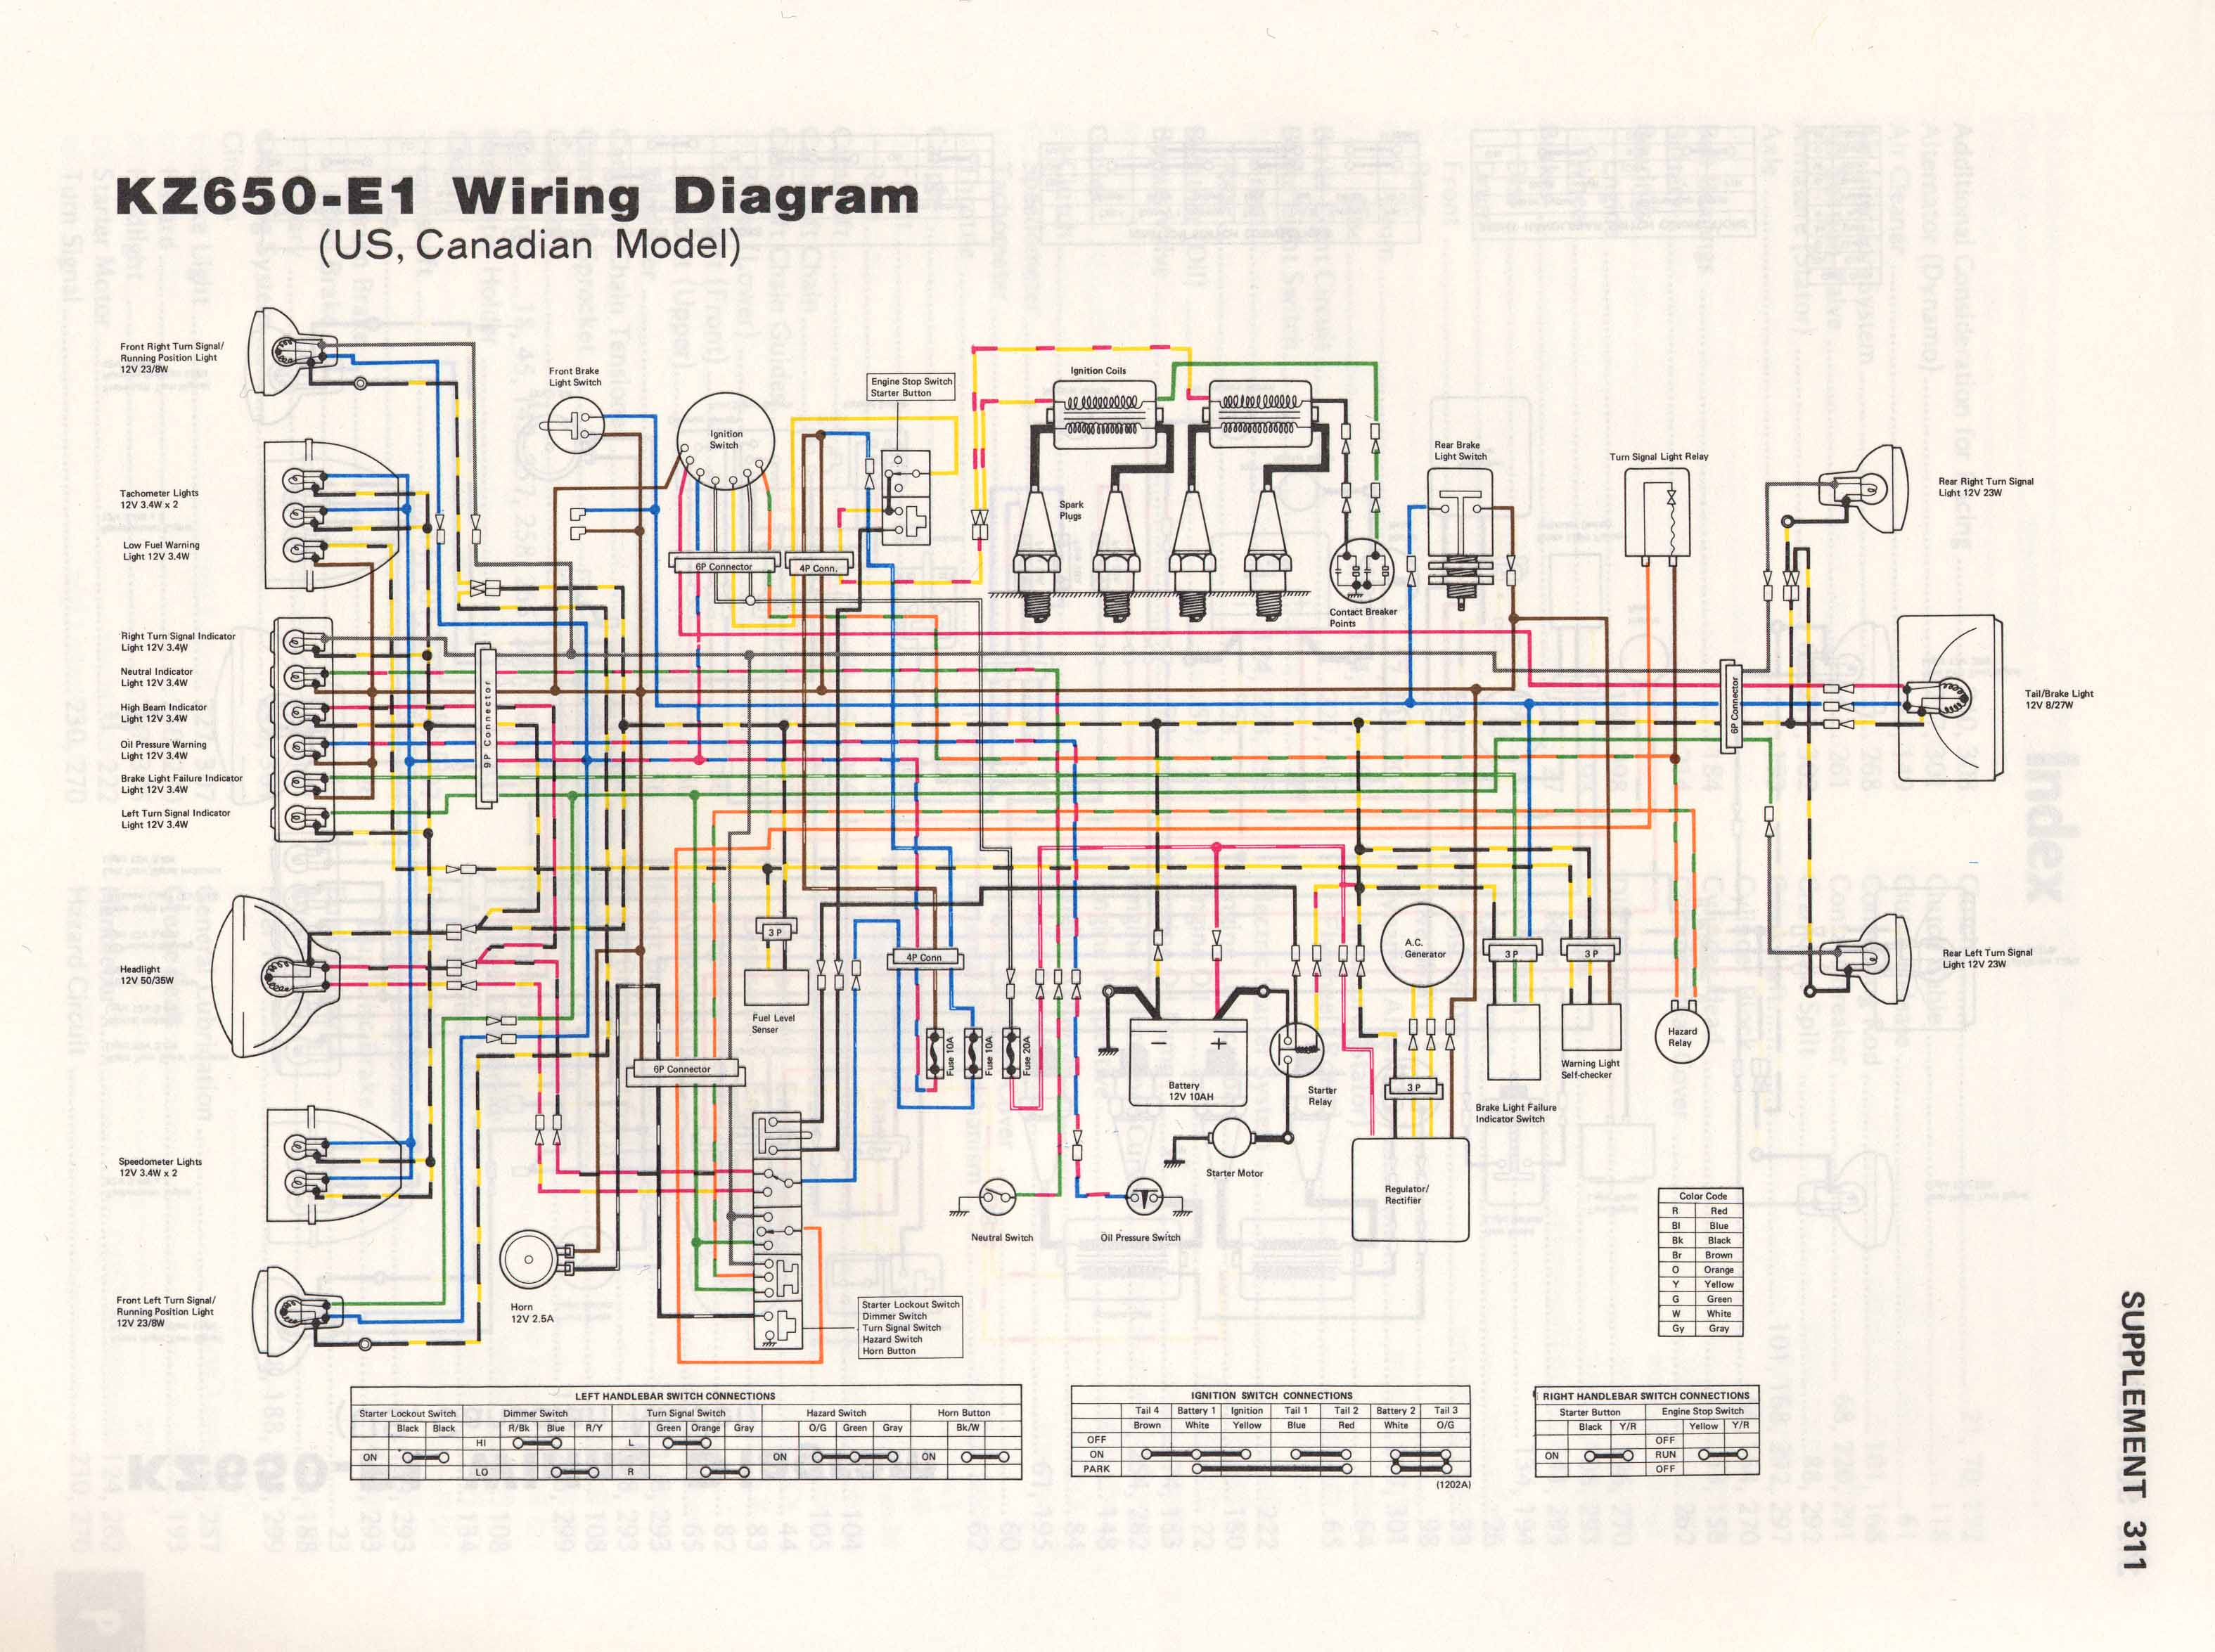 Enjoyable Kawasaki Z650 Kz650 Colour Wiring Loom Diagrams Wiring Diagram Wiring Cloud Faunaidewilluminateatxorg